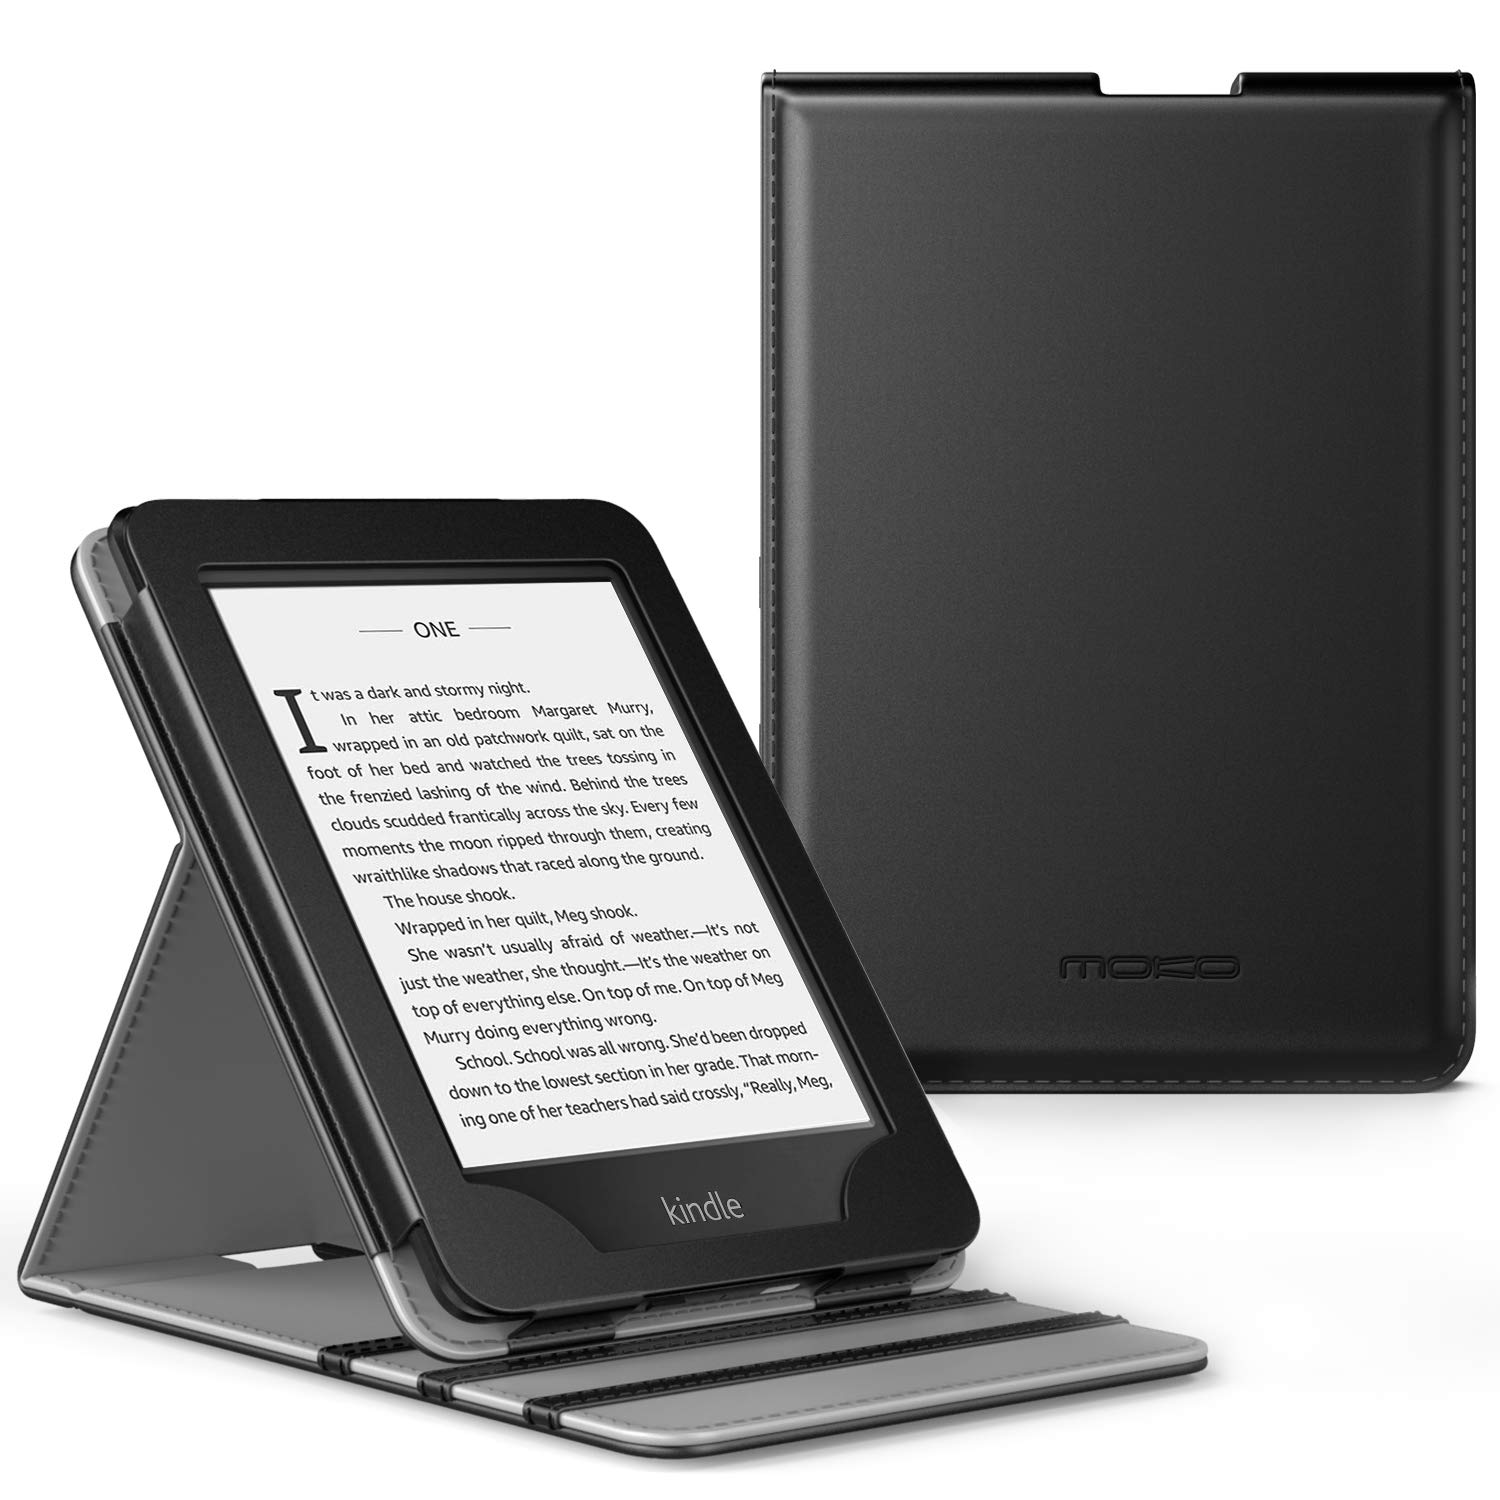 MoKo Case Fits Kindle Paperwhite (10th Generation, 2018 Releases), Premium Vertical Flip Cover with Auto Wake/Sleep Compatible for Amazon Kindle Paperwhite 2018 E-Reader - Black